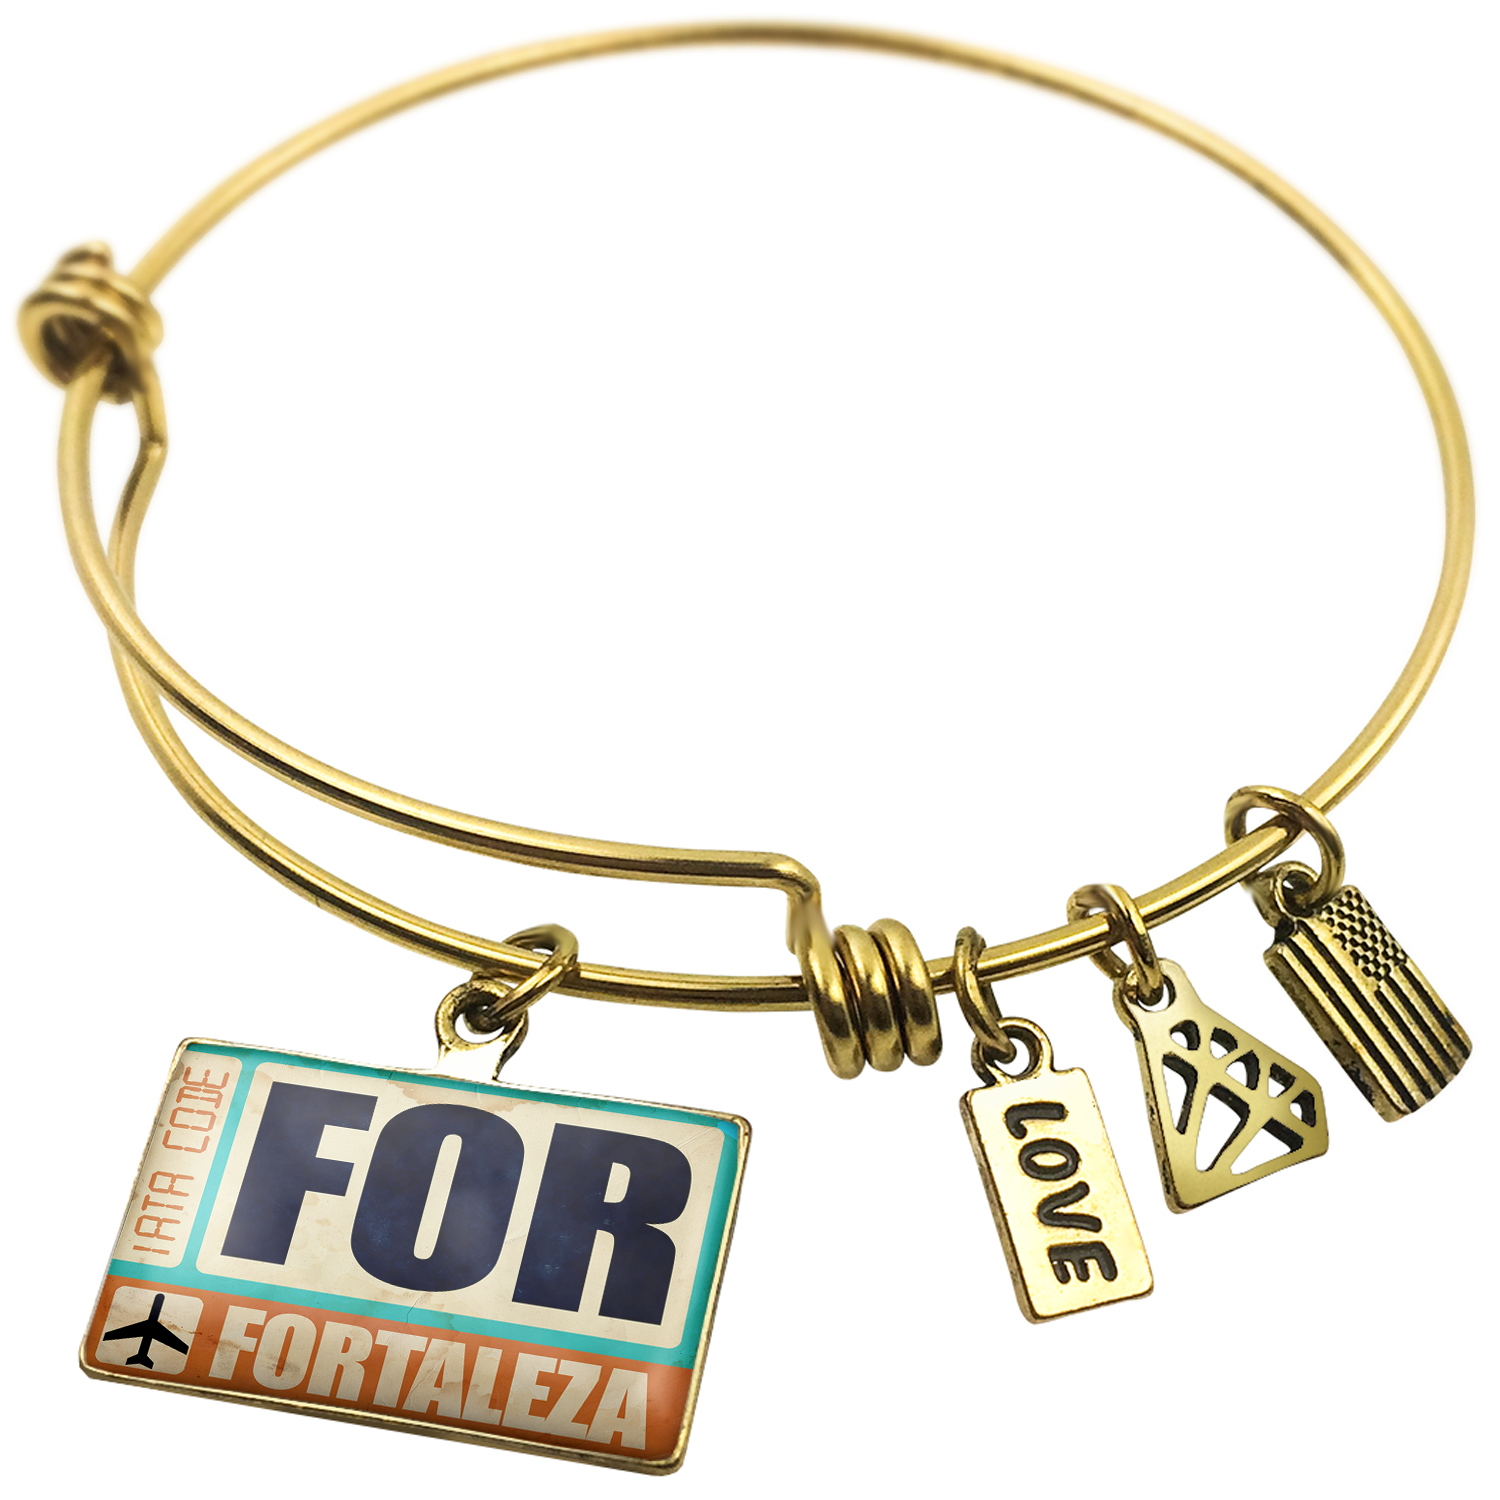 Expandable Wire Bangle Bracelet Airportcode FOR Fortaleza - NEONBLOND